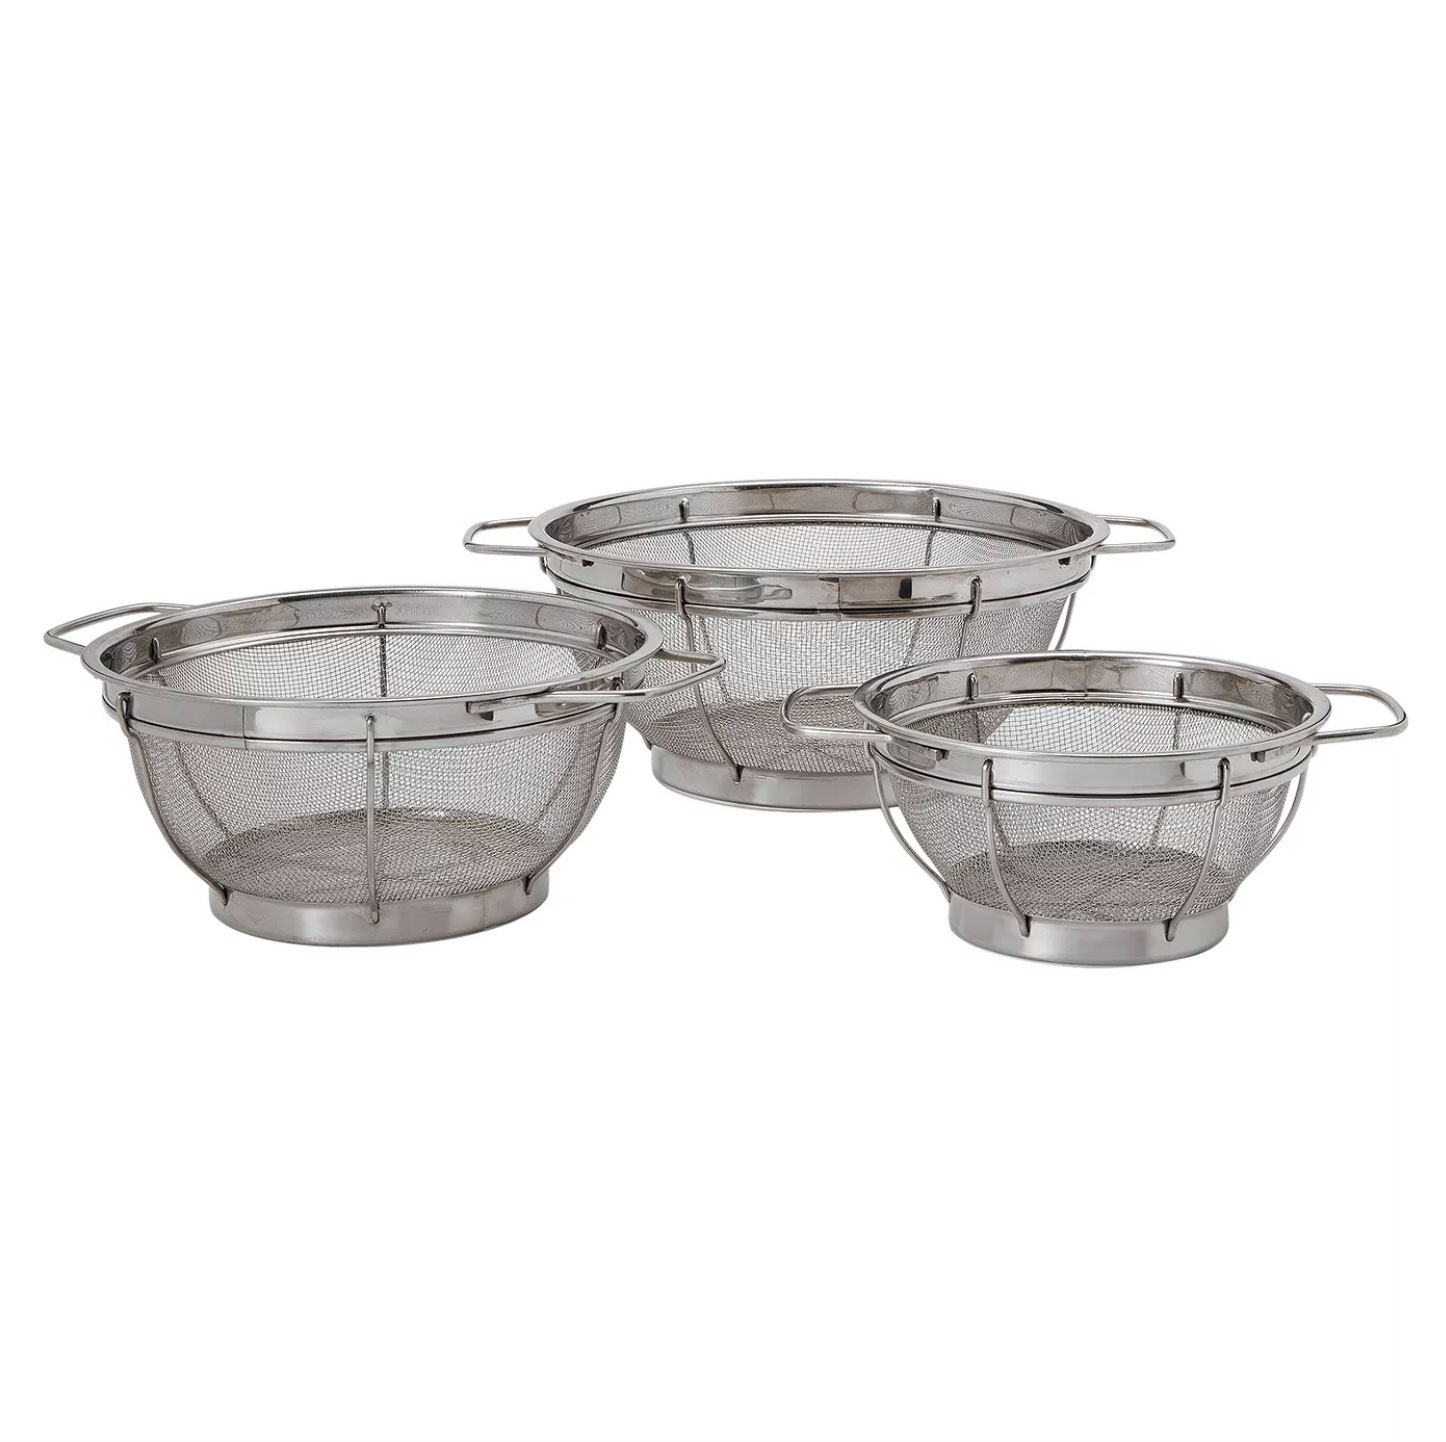 Farberware Set of 3 Mesh Sieves